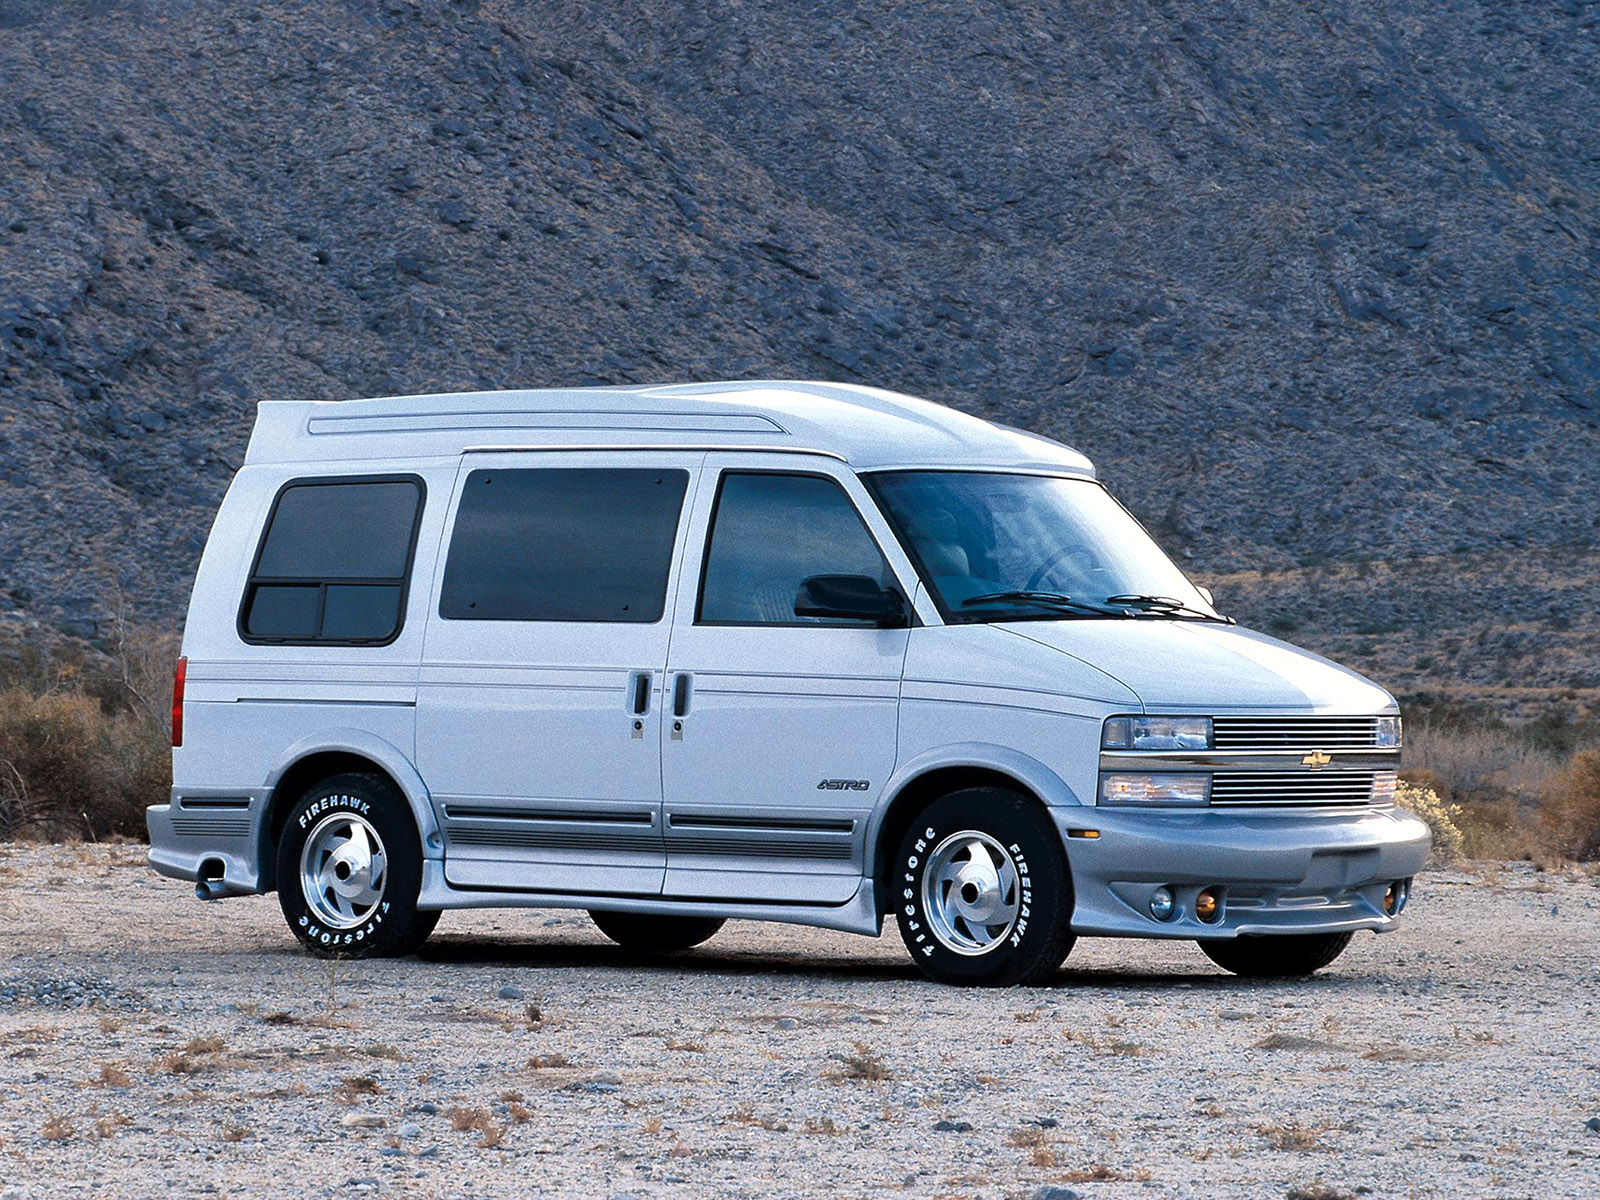 Chevrolet Astro Van Photos Photogallery With 11 Pics